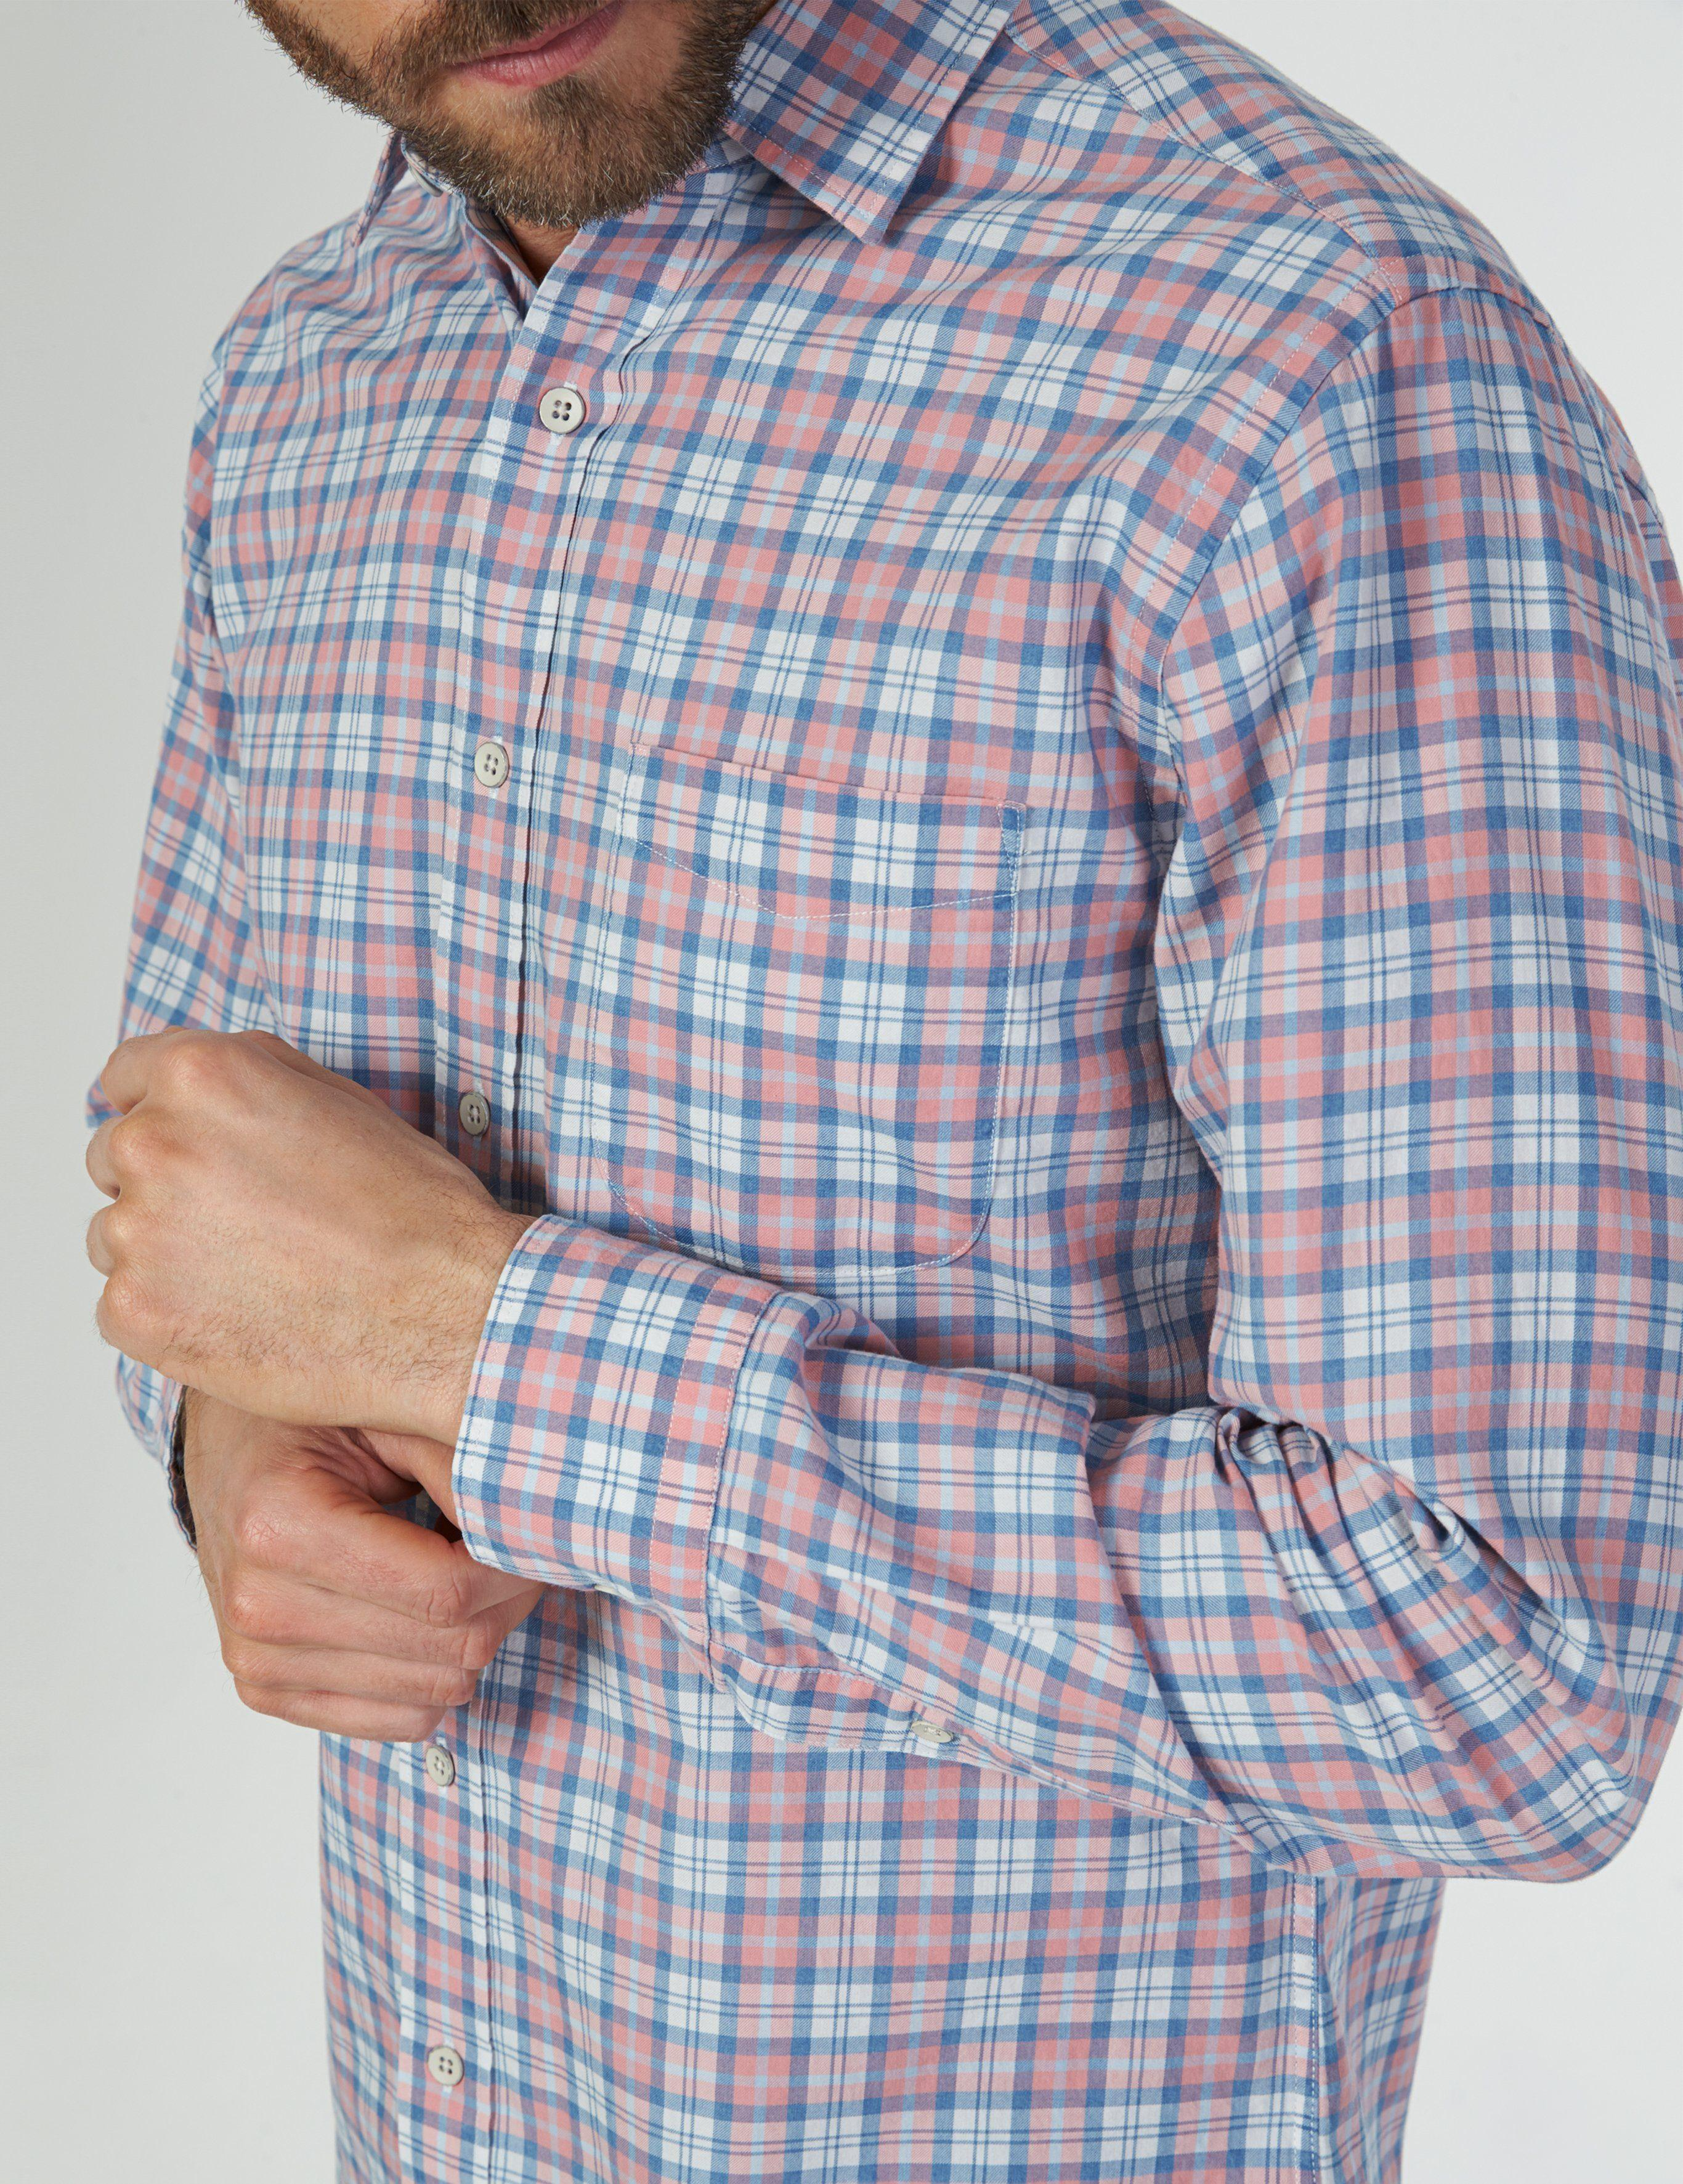 6fce392dc61 Lyst - Faherty Brand Everyday Shirt in Blue for Men